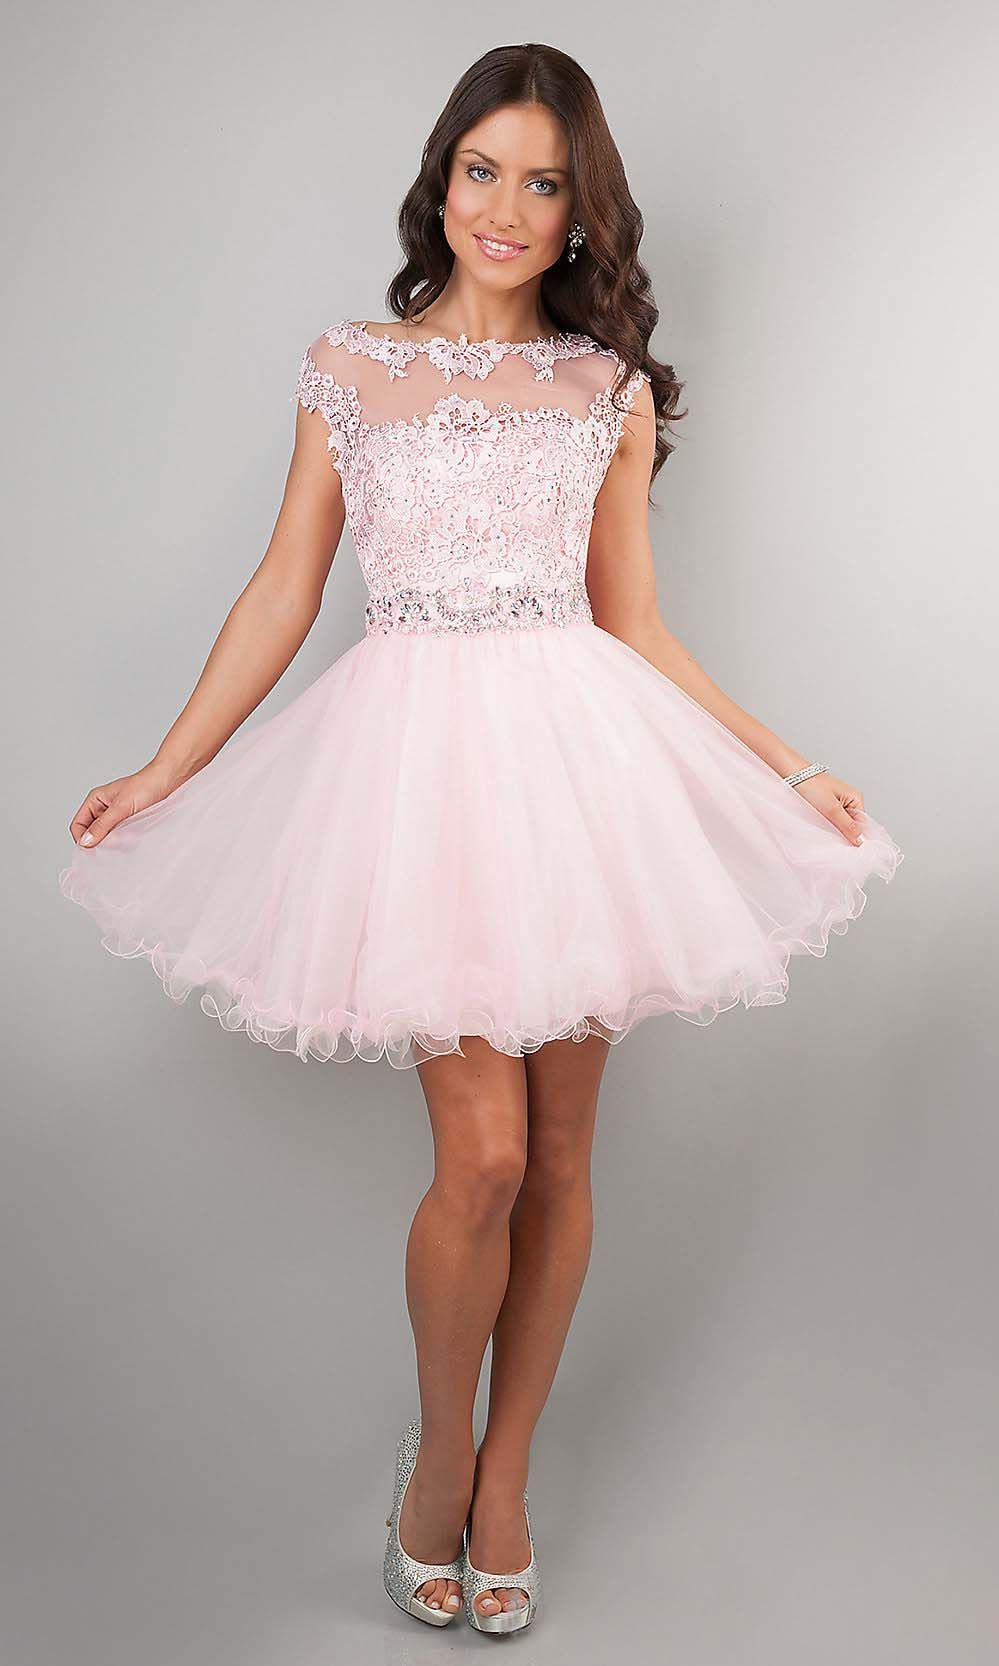 Short Formal Dresses for Teenagers